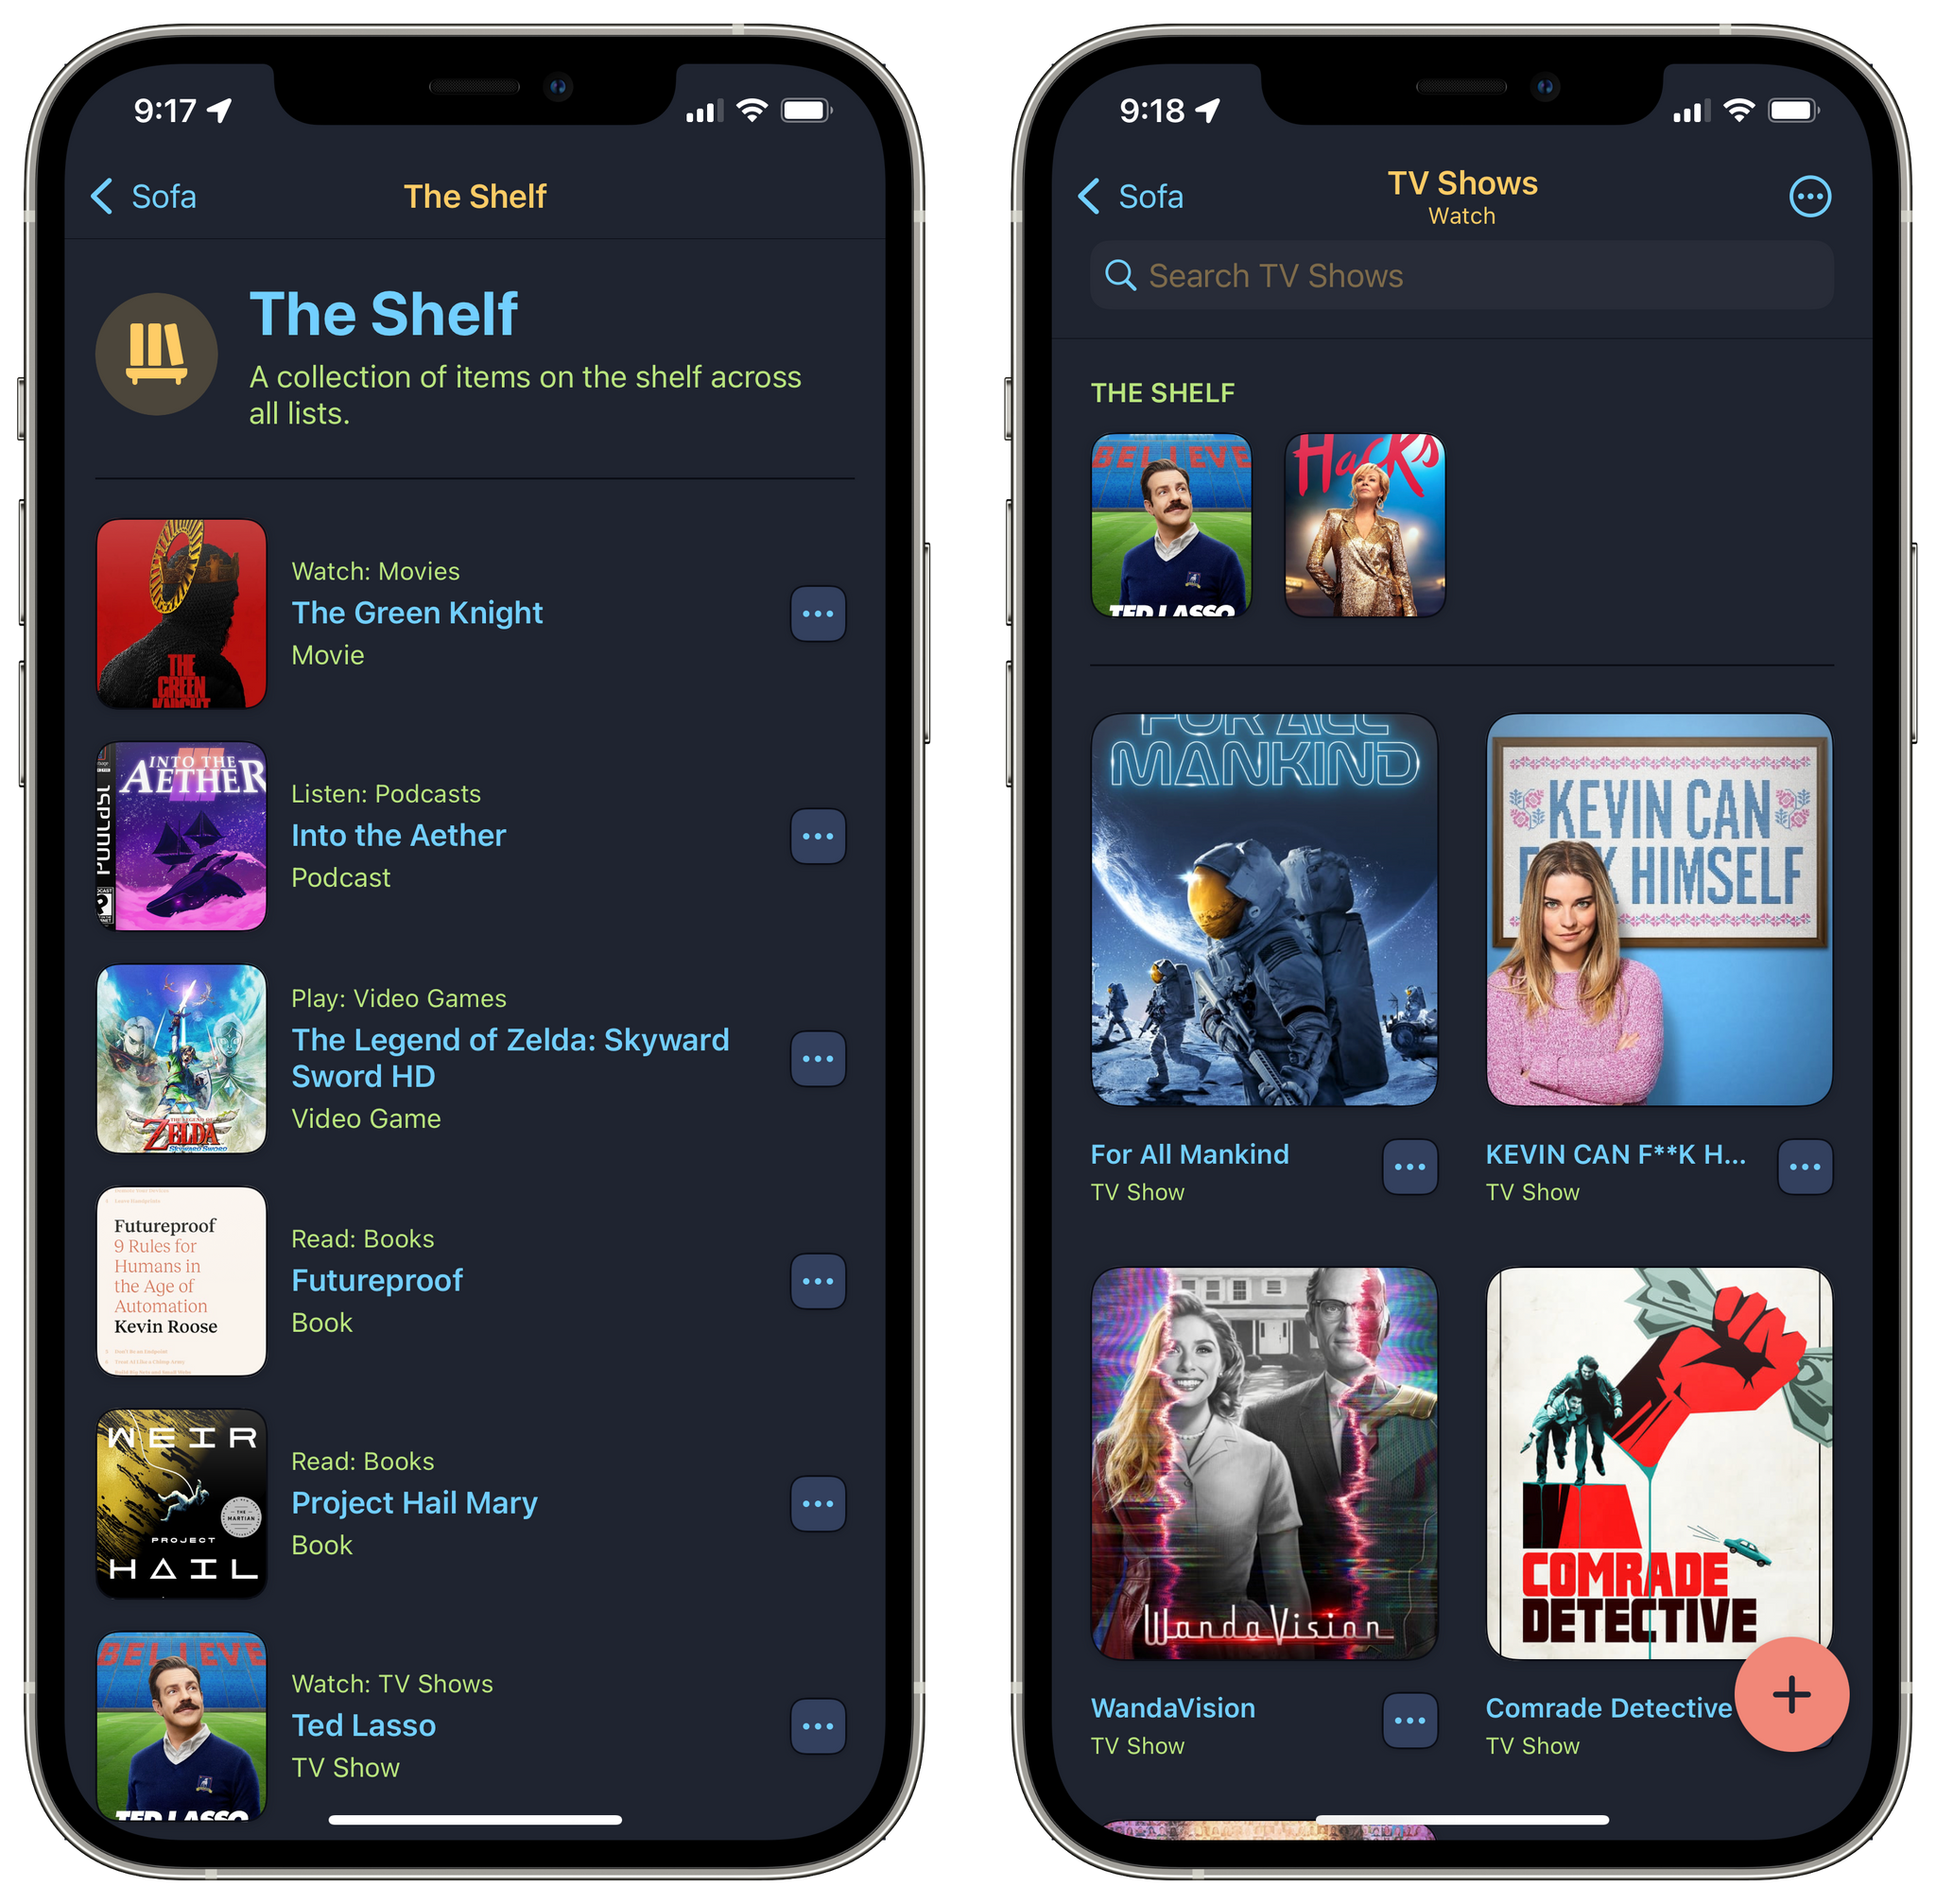 The Shelf is available in individual lists as a row of thumbnails at the top of the screen or as a separate list that includes Shelf items across all your lists.